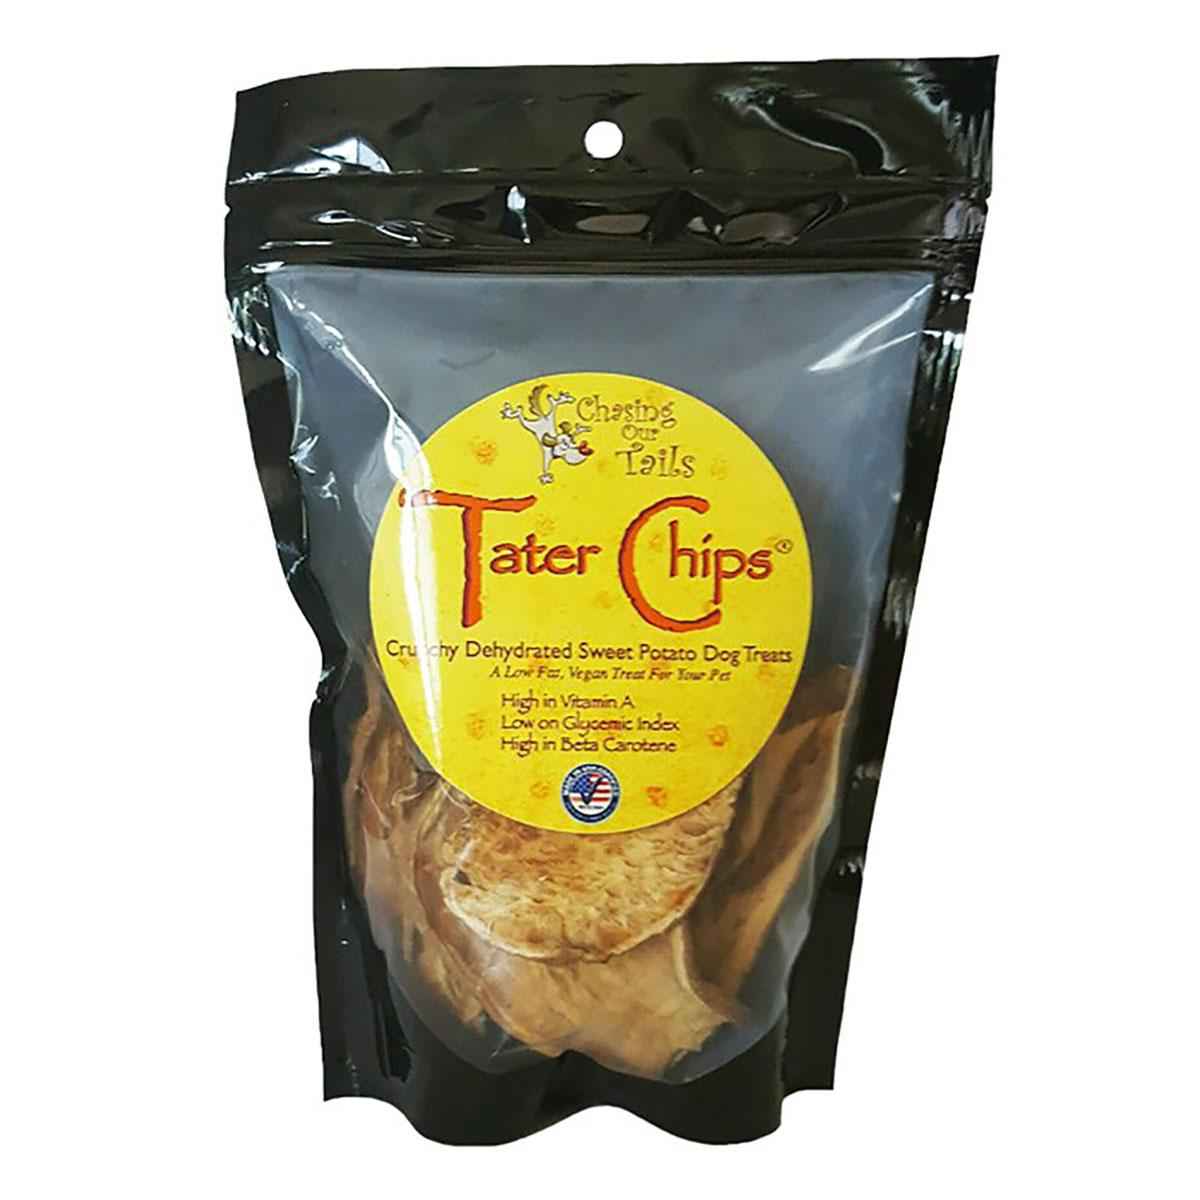 Chasing Our Tails Dehydrated Sweet Potato Dog Treats - Tater Chips